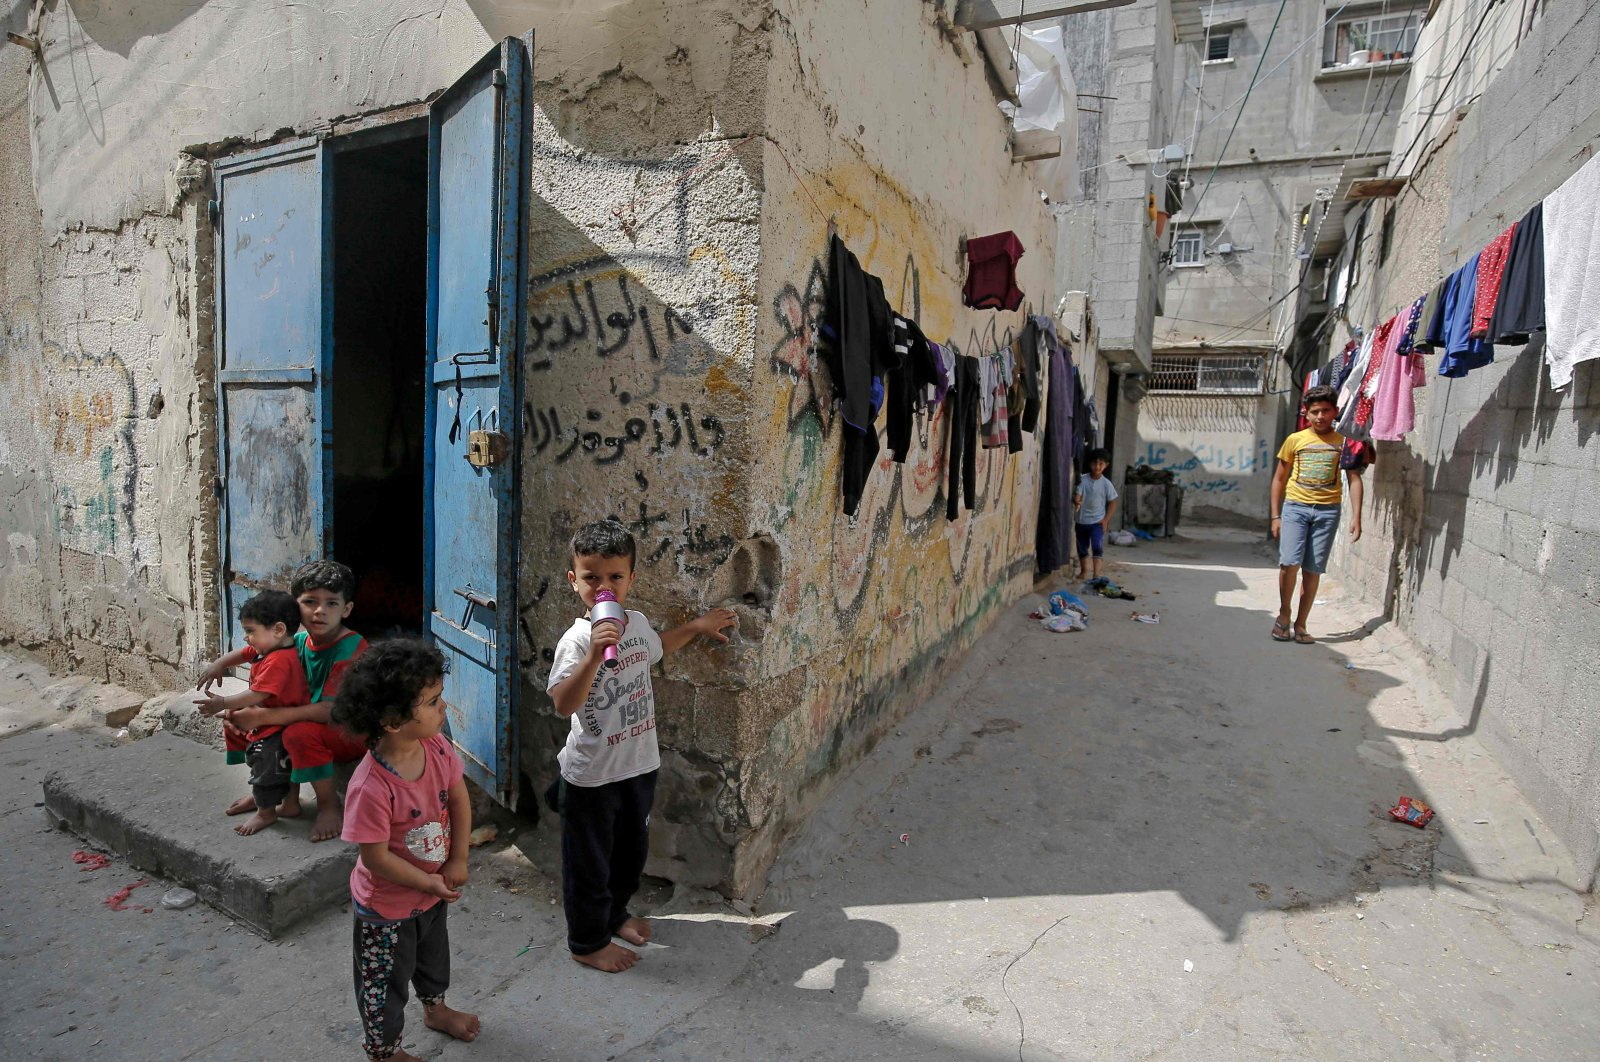 Palestinian children outside their shacks in Gaza City's al-Shati refugee camp, May 15, 2020. (AFP Photo)